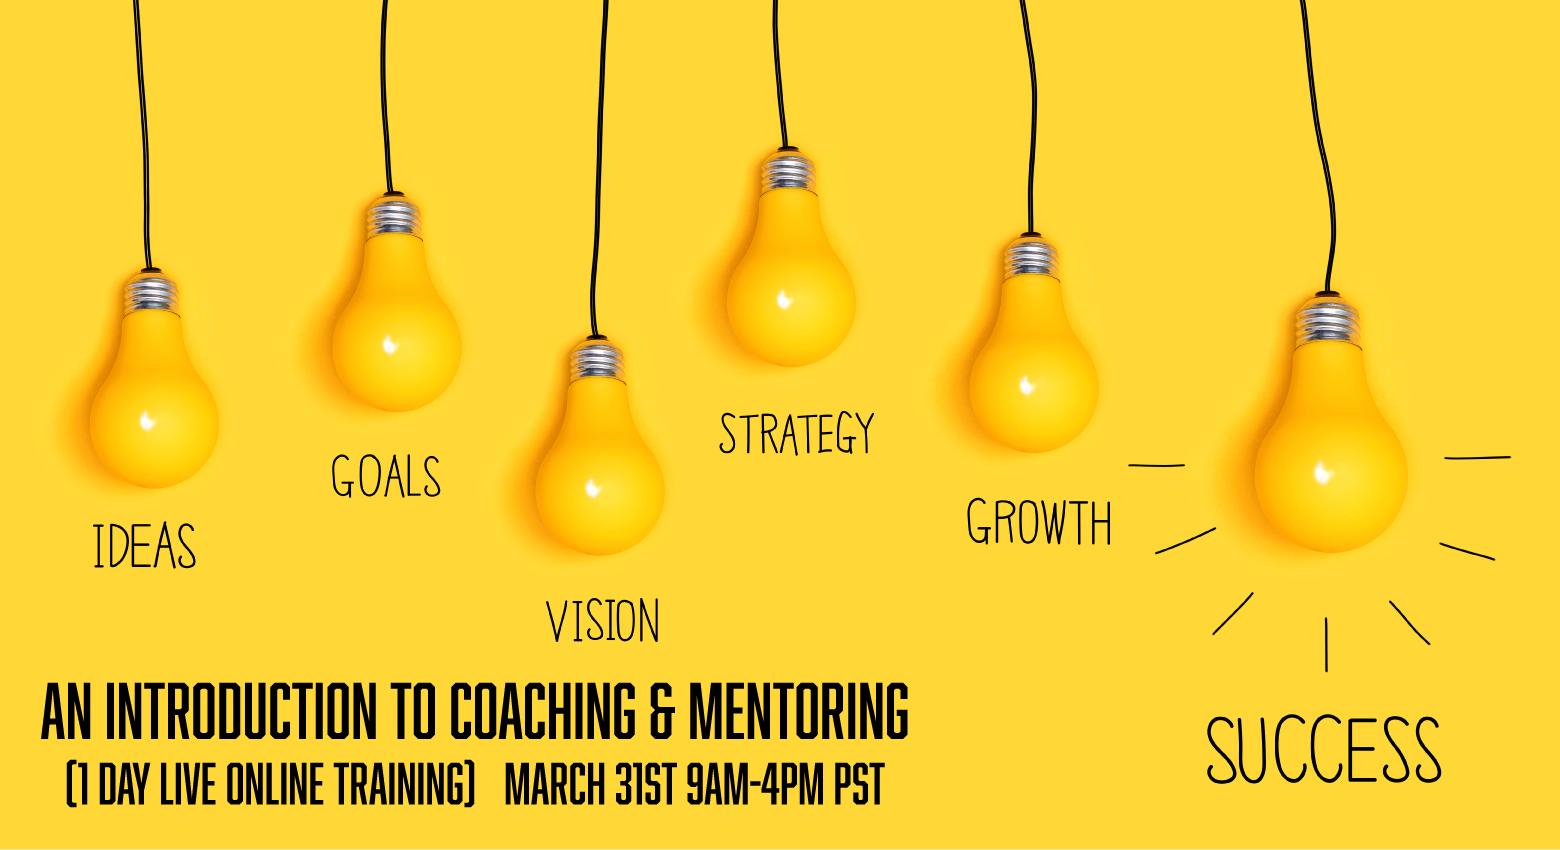 An-Introduction-To-Coaching-&-Mentoring-Instagram.png